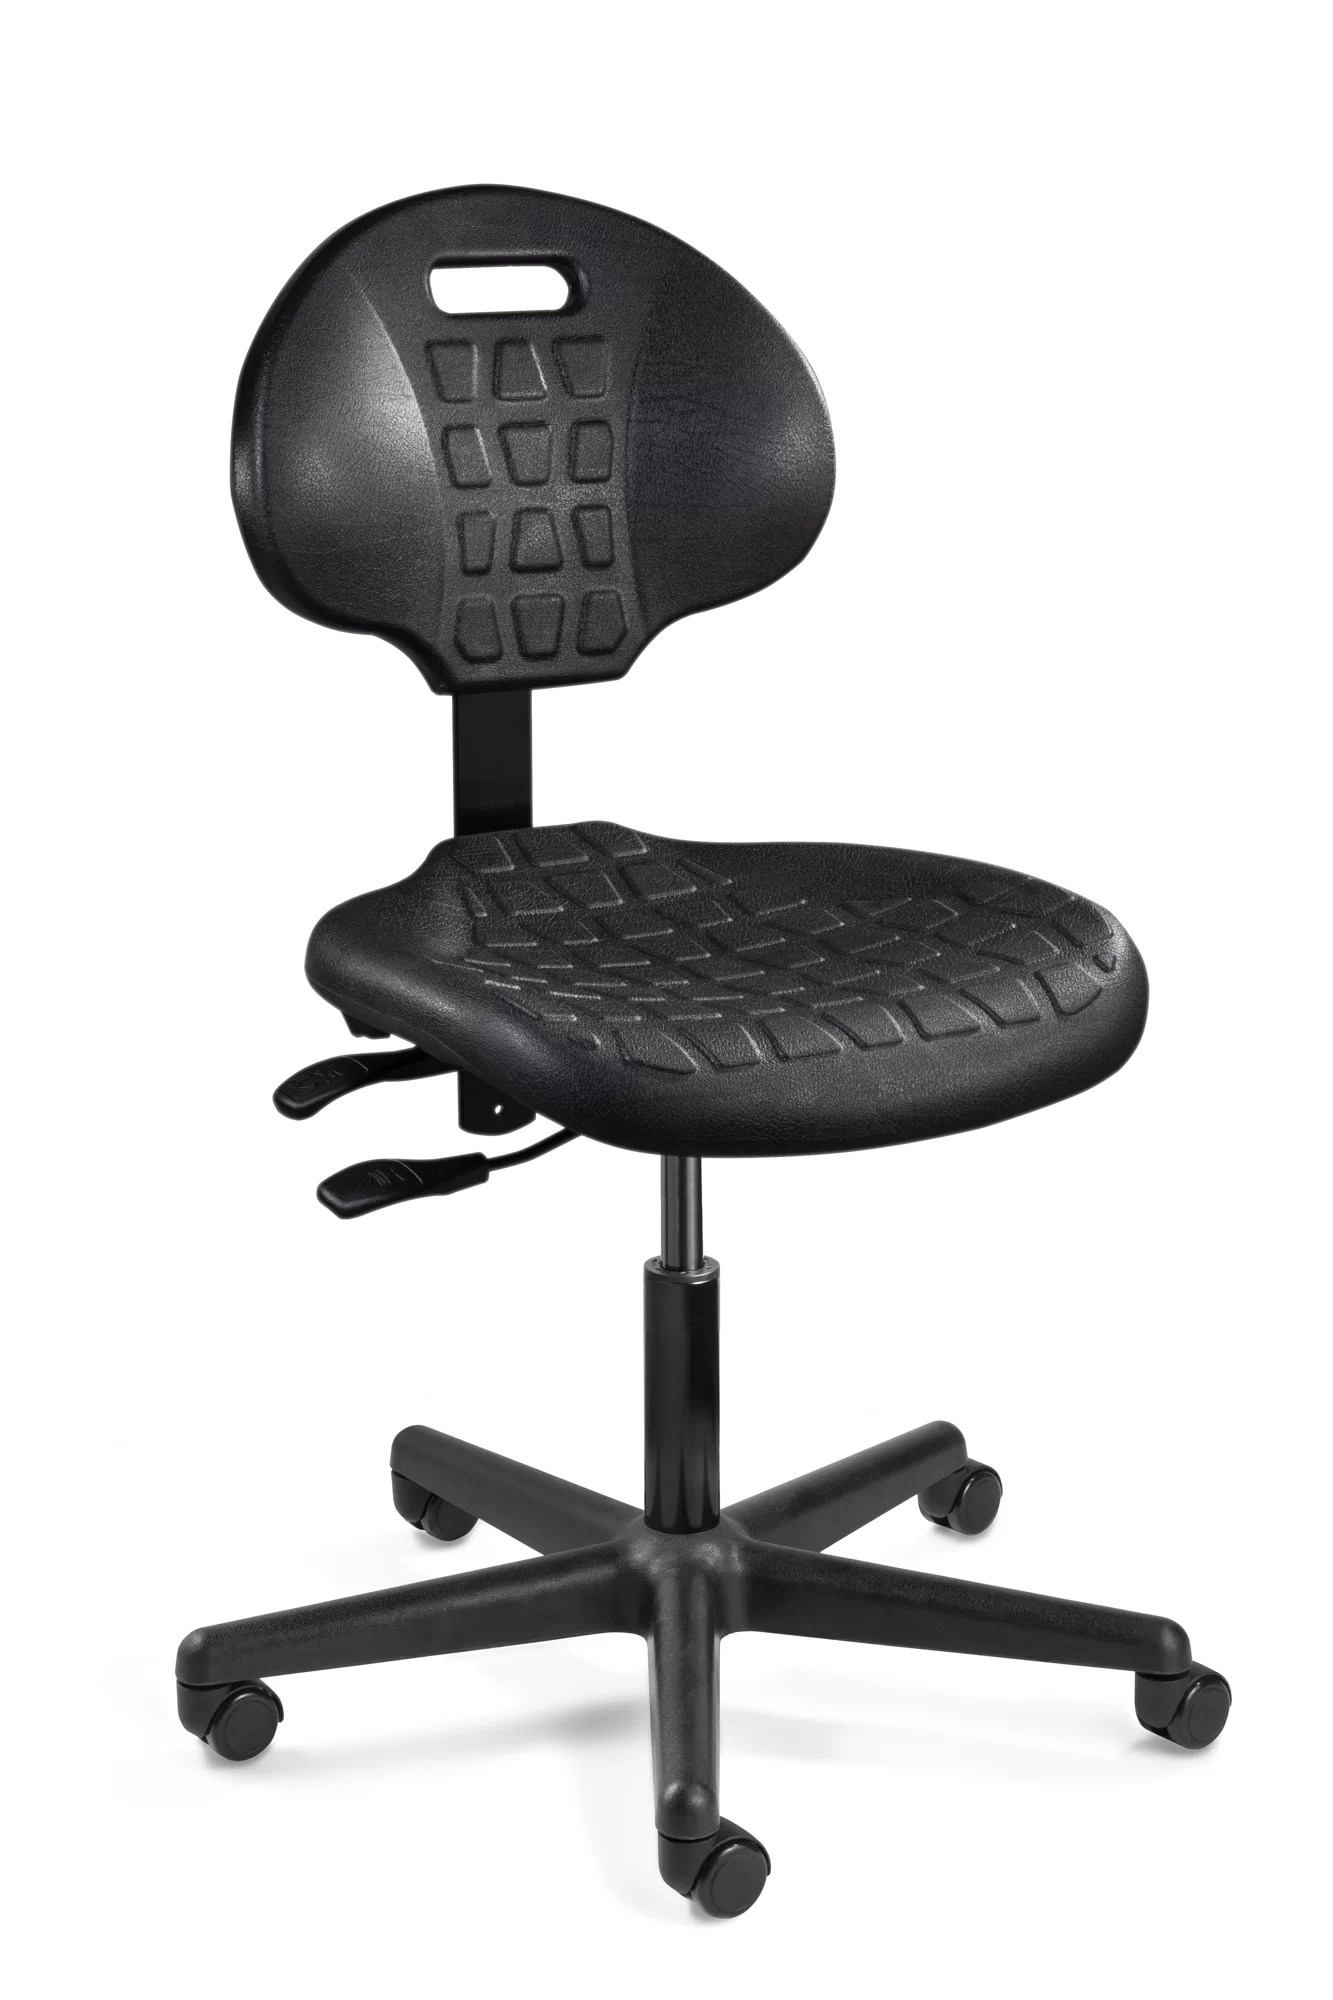 Most Ergonomic Office Chair Bevco Everlast Ergonomic Office Chair Wayfair